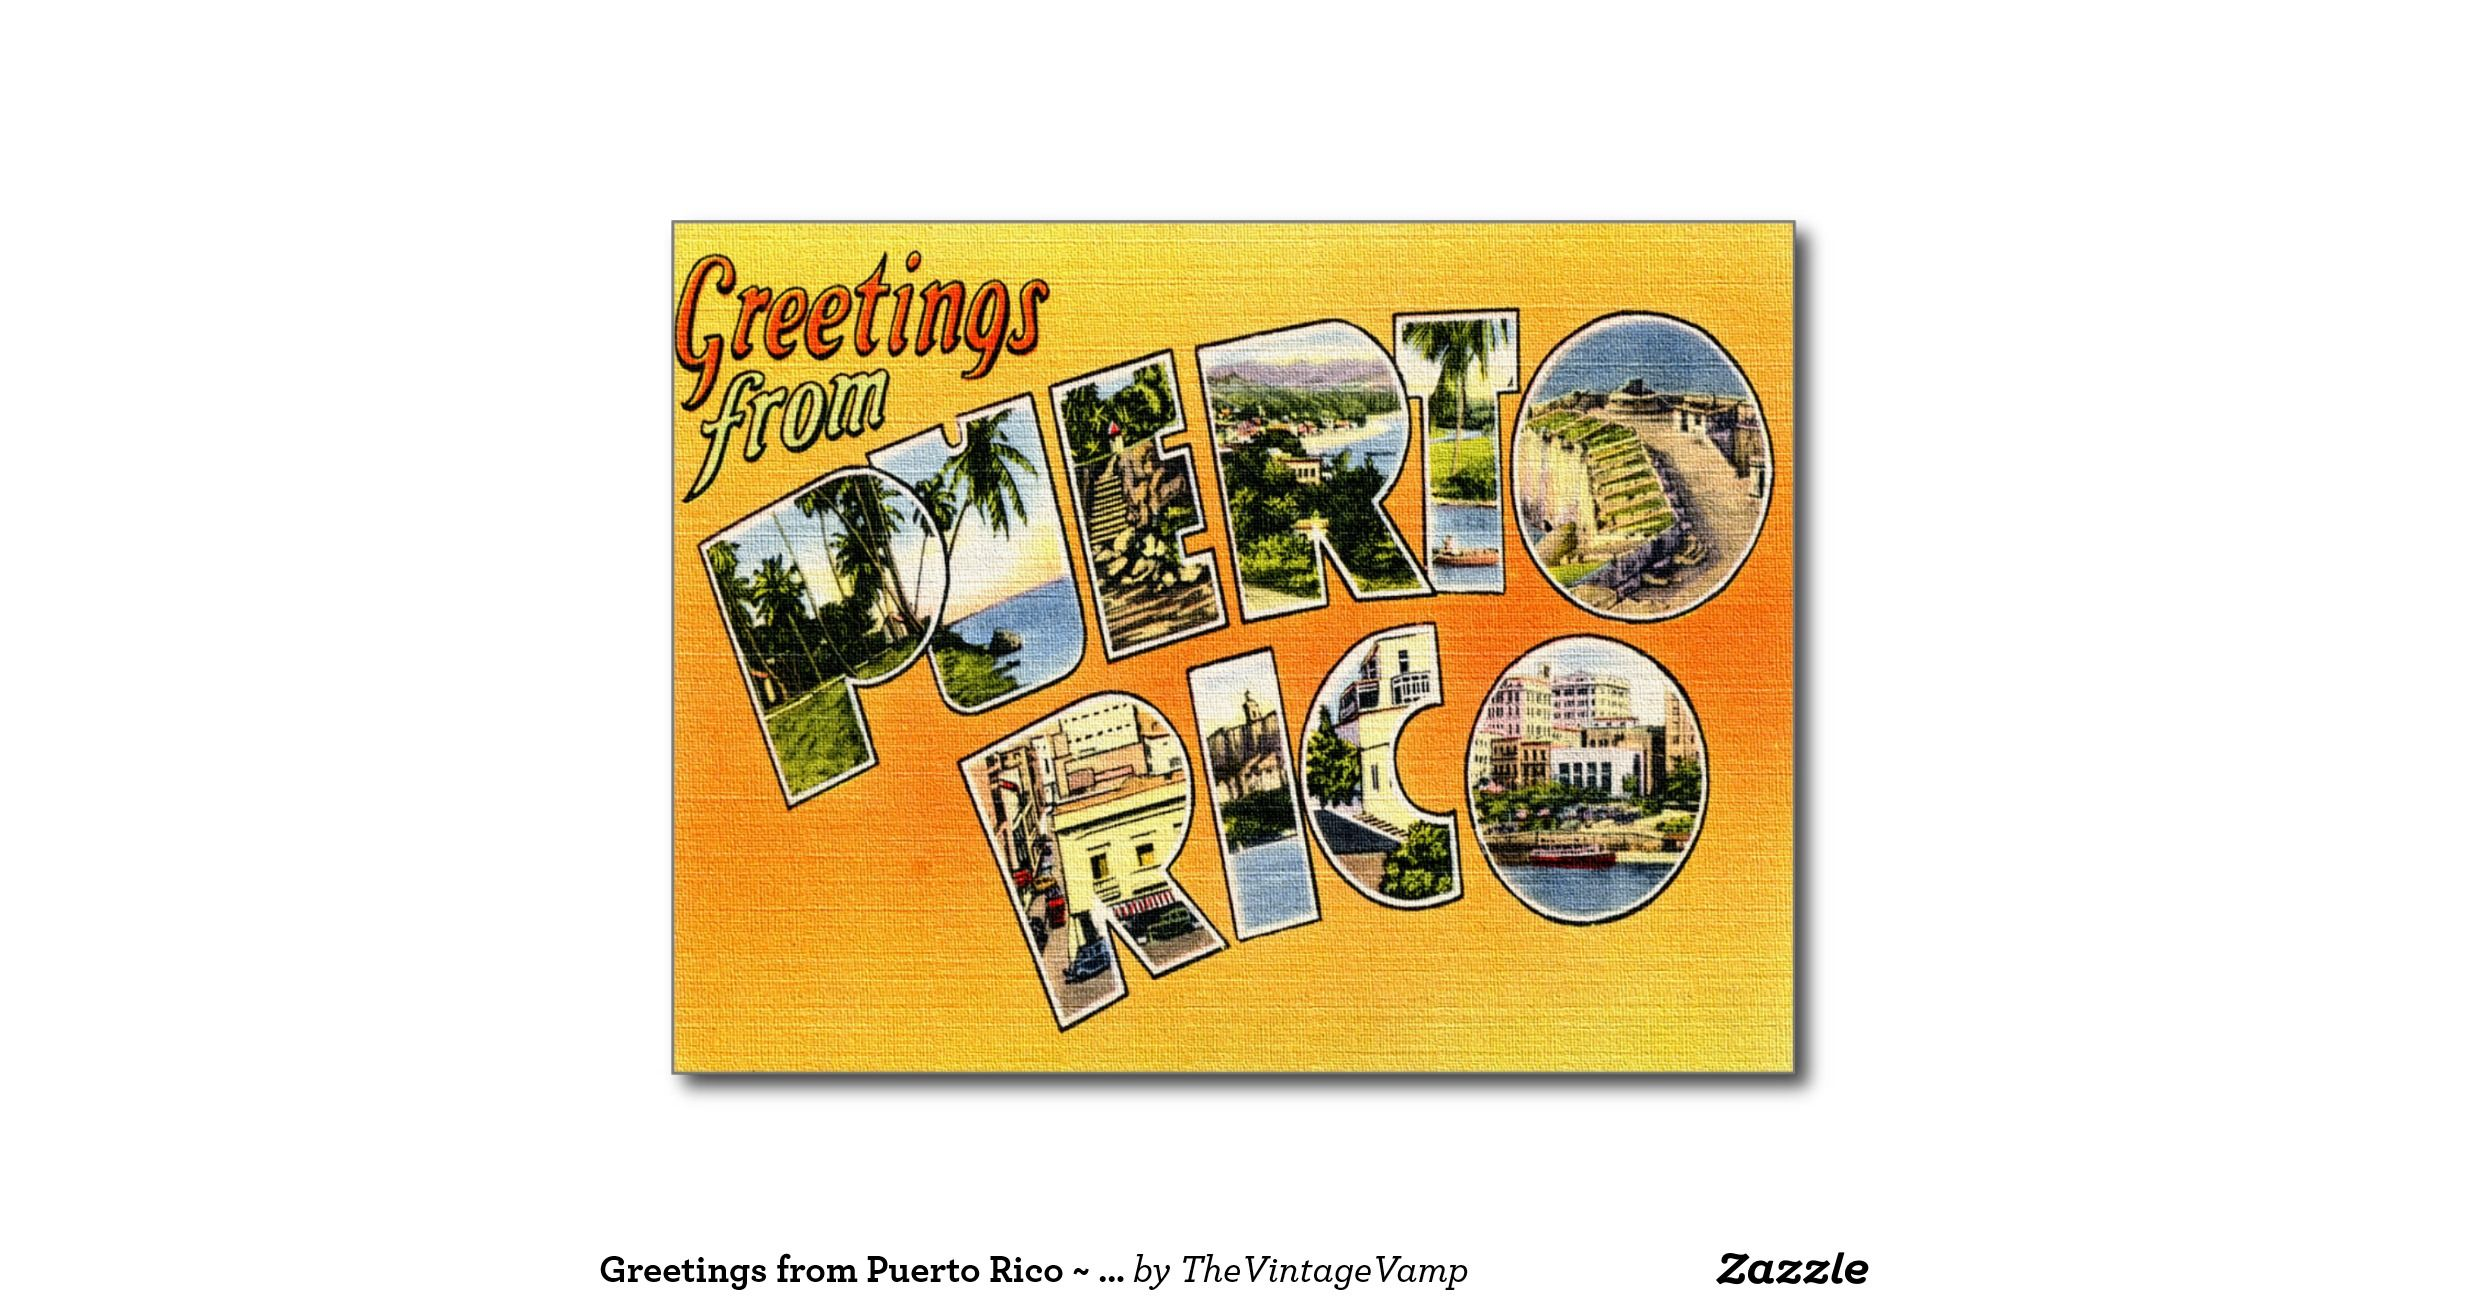 Us greetings from puerto rico state stamps google search stamp us greetings from puerto rico state stamps google search m4hsunfo